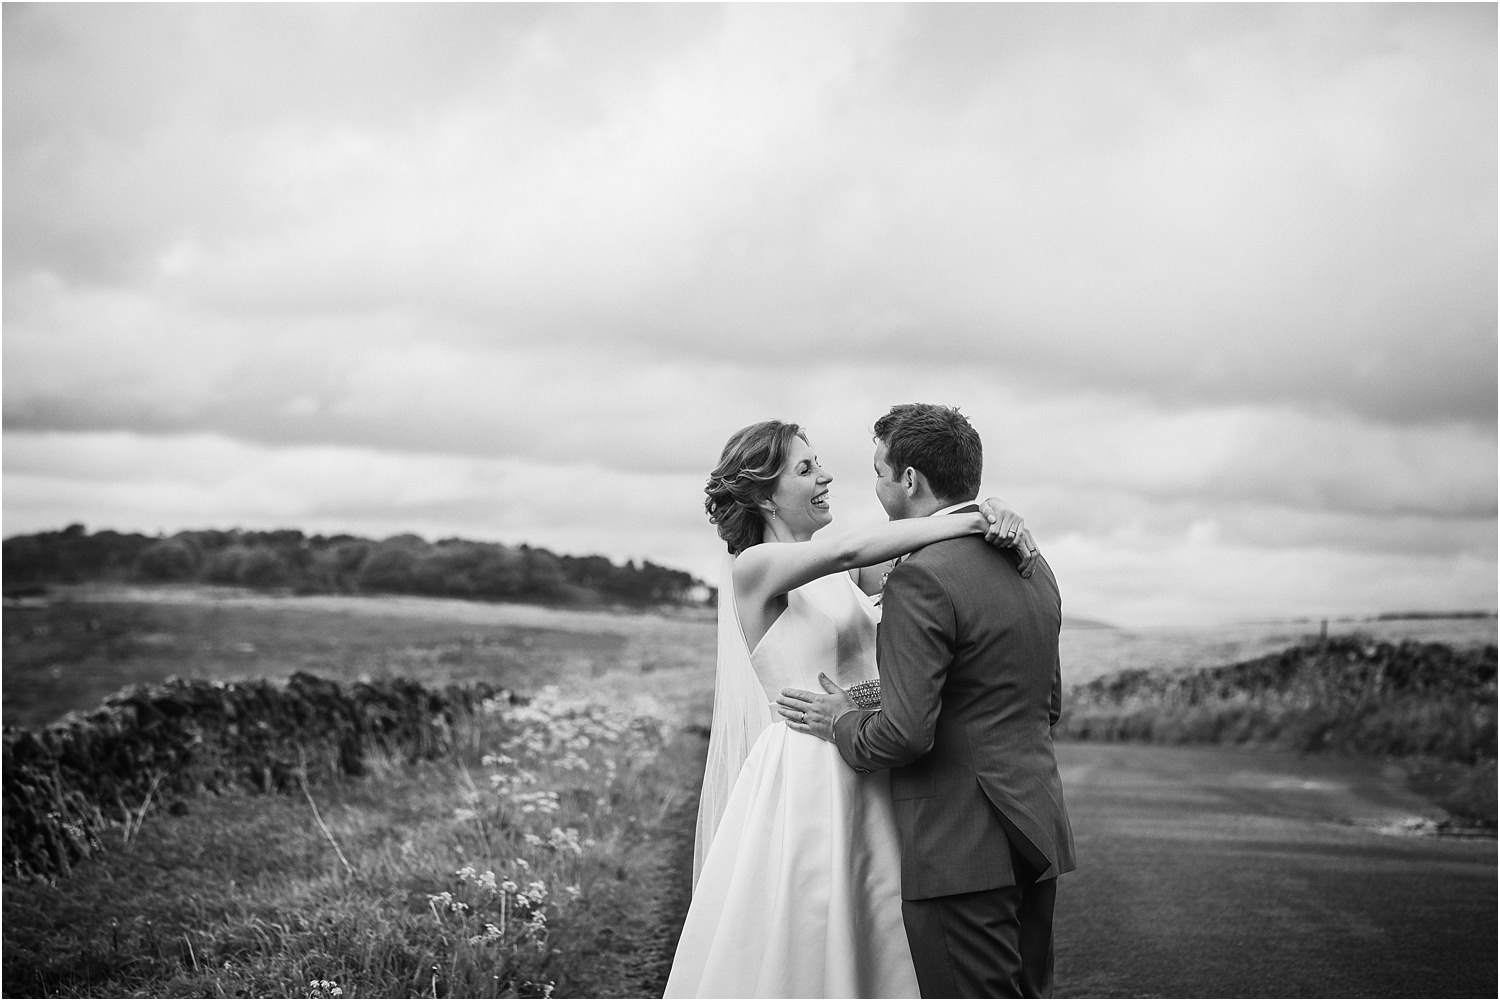 Lancashire hills provide the backdrop for bride and groom's embrace after their  wedding ceremony